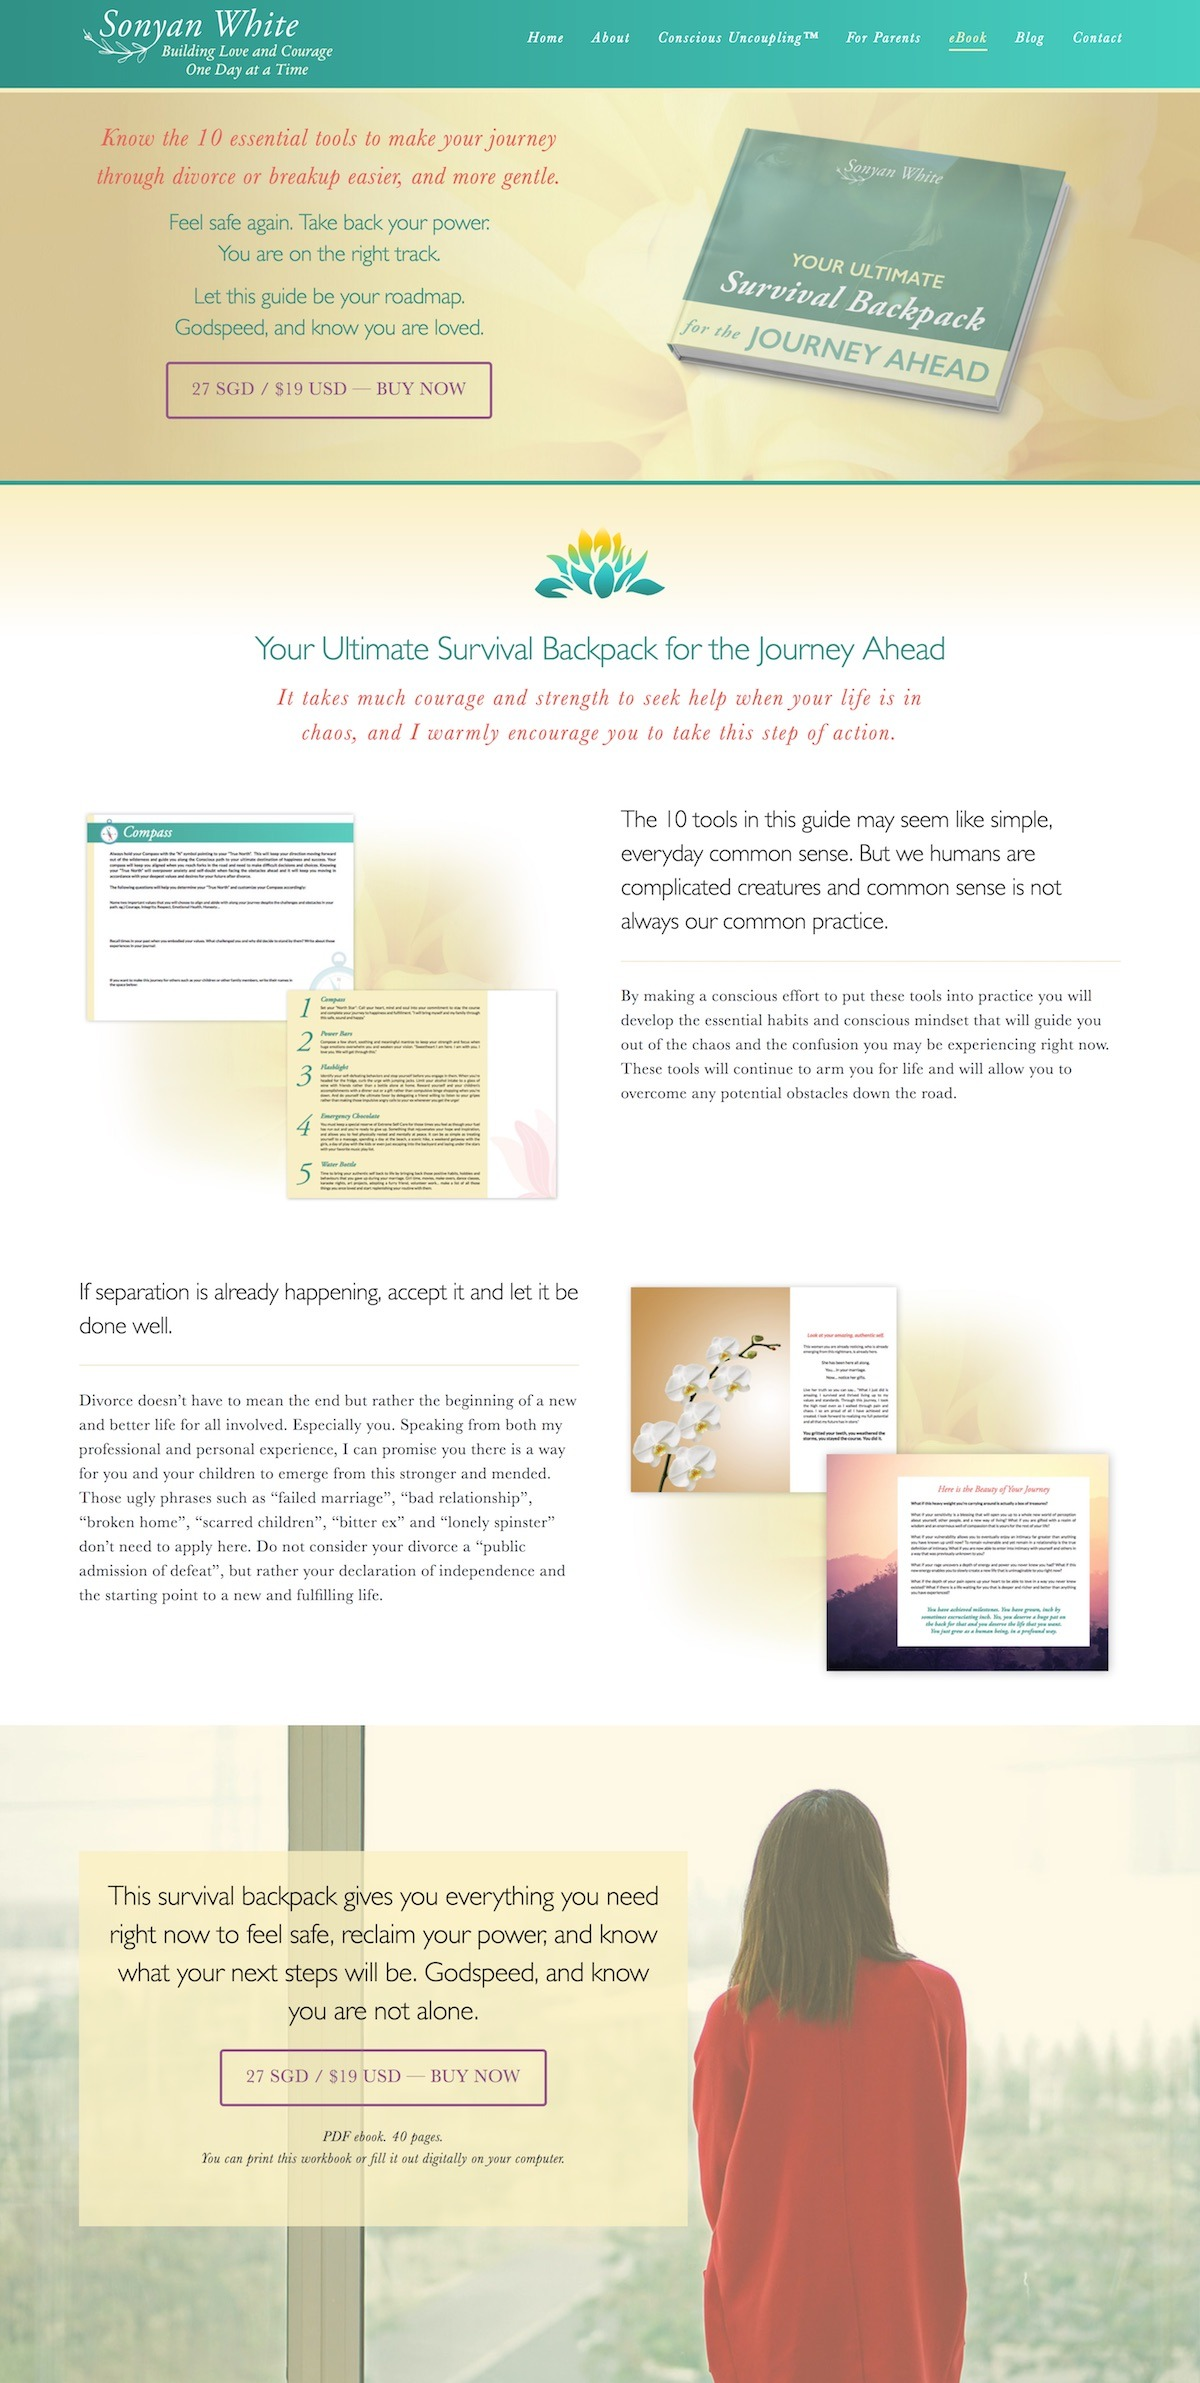 dreamy website design for conscious uncoupling coach Sonyan White